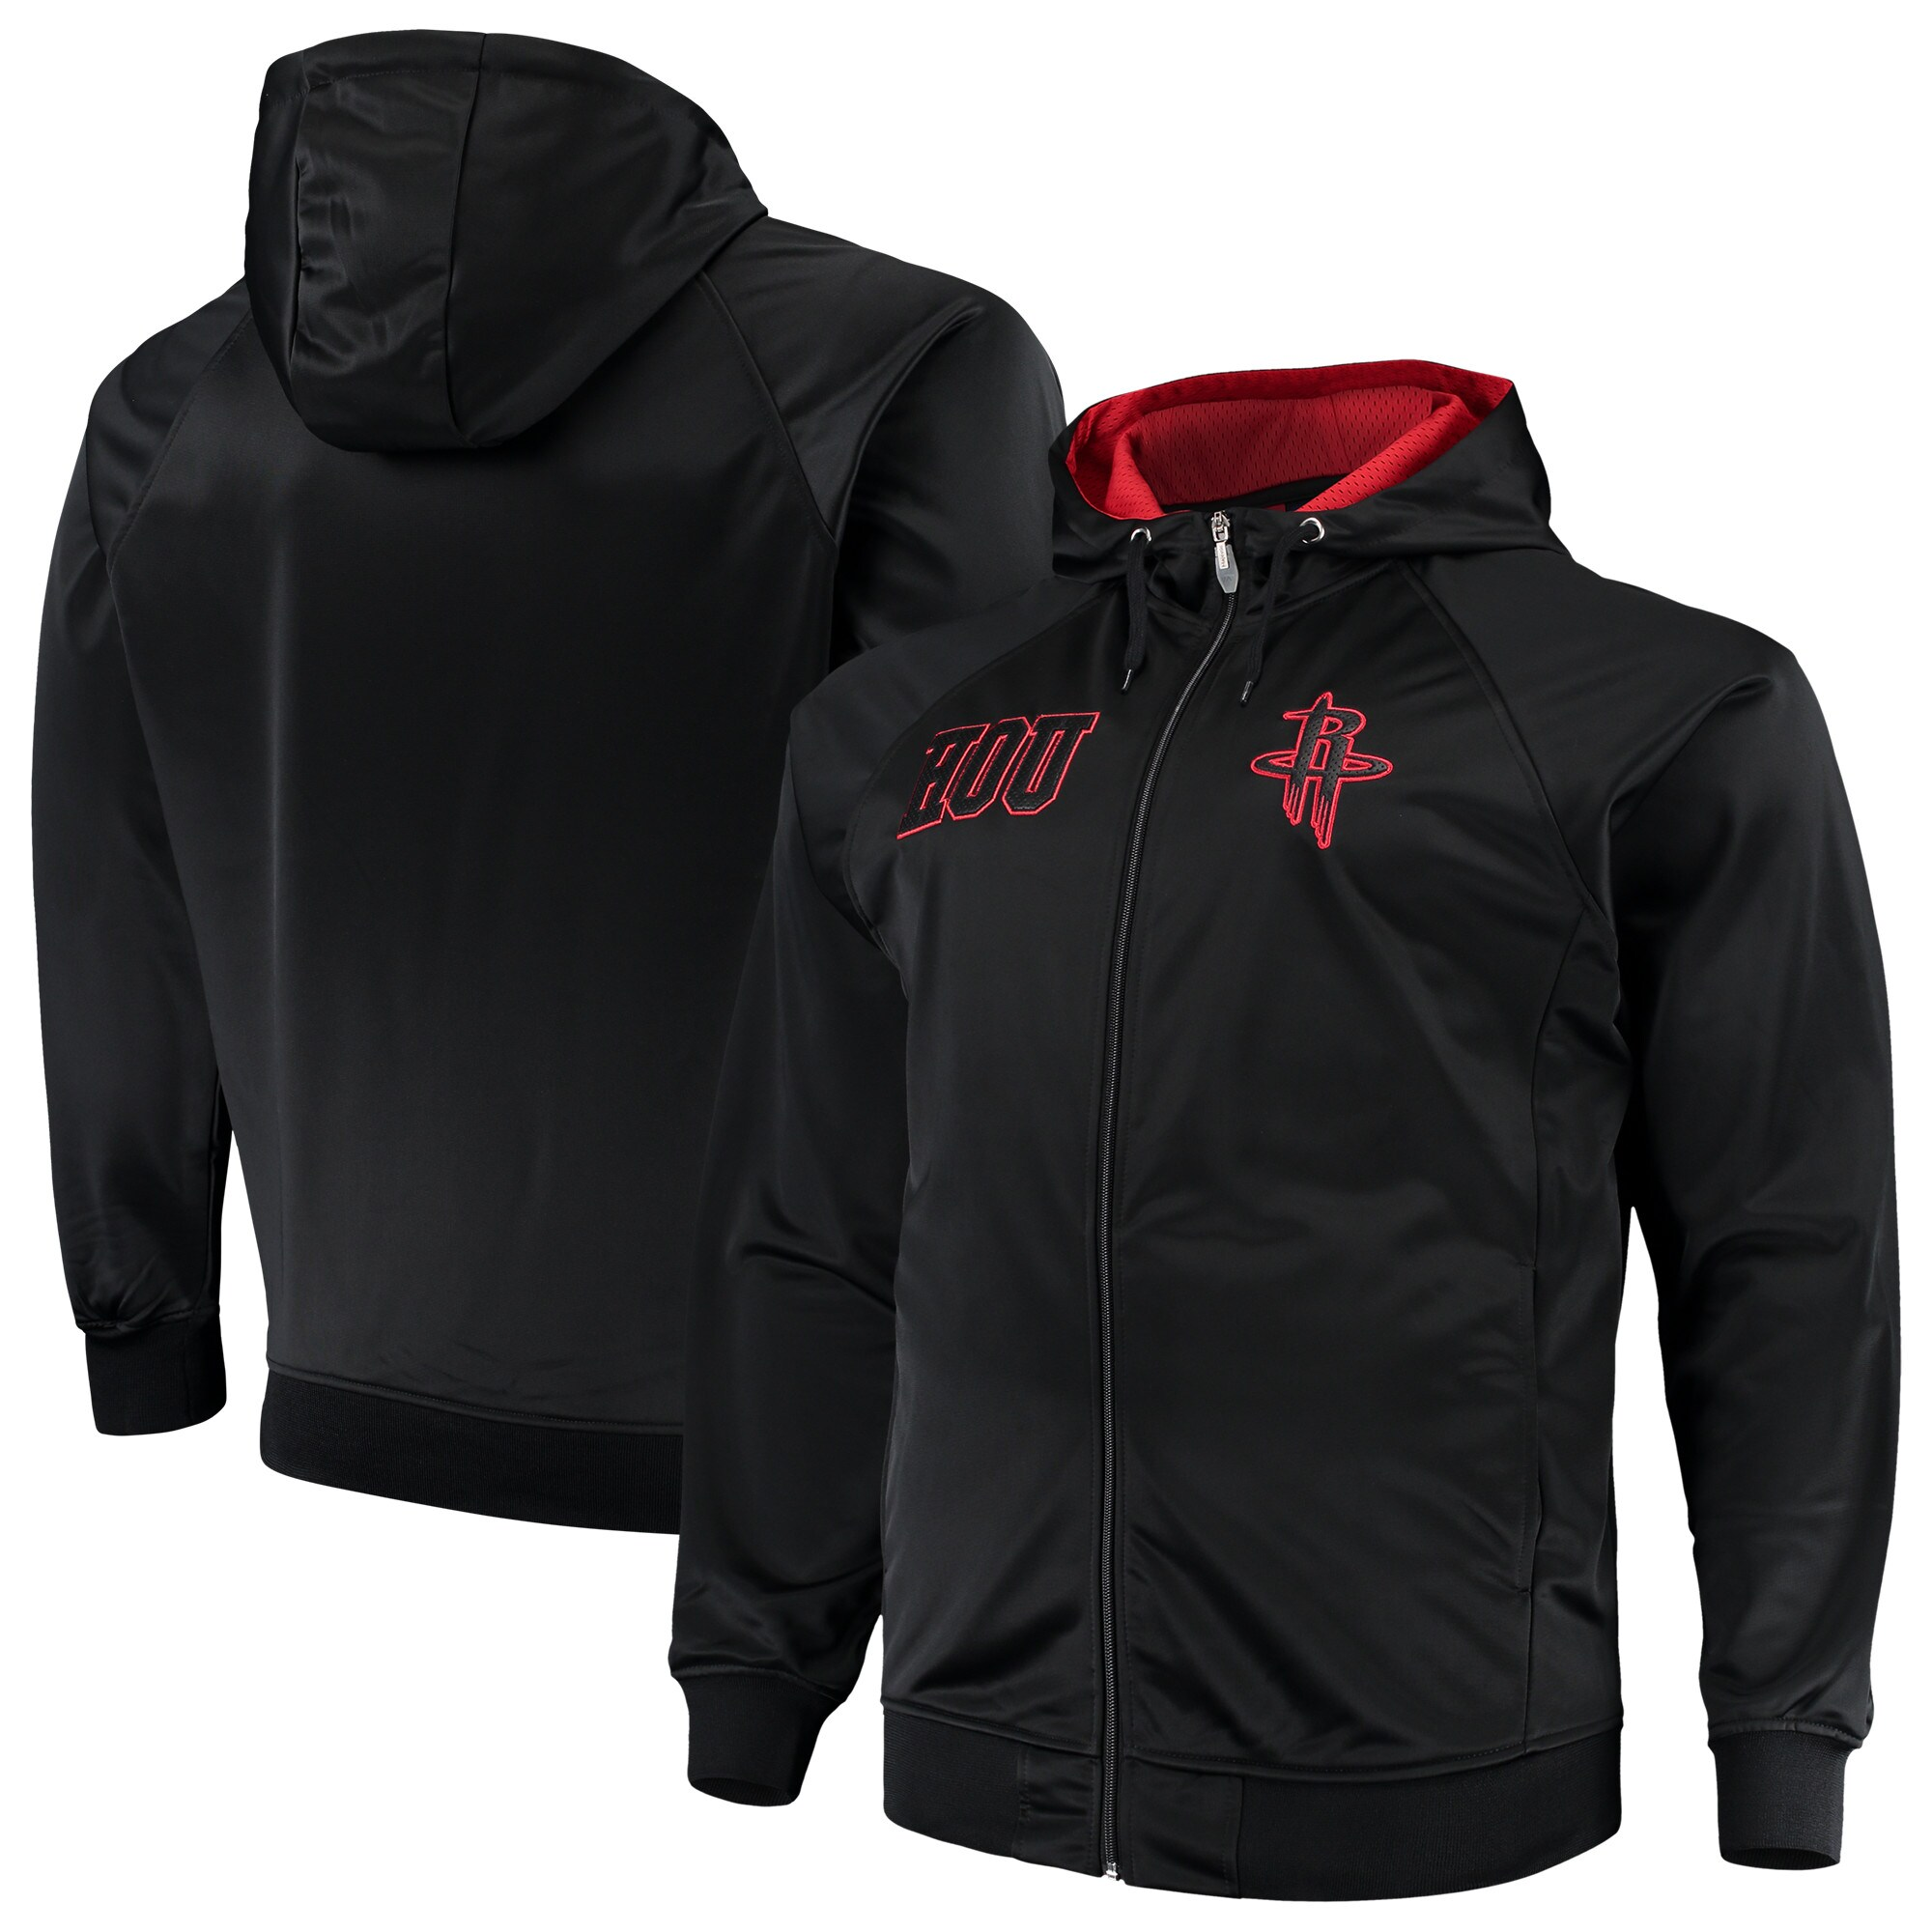 Houston Rockets Majestic Big & Tall Blackout City Color Pop Full-Zip Hoodie - Black/Red